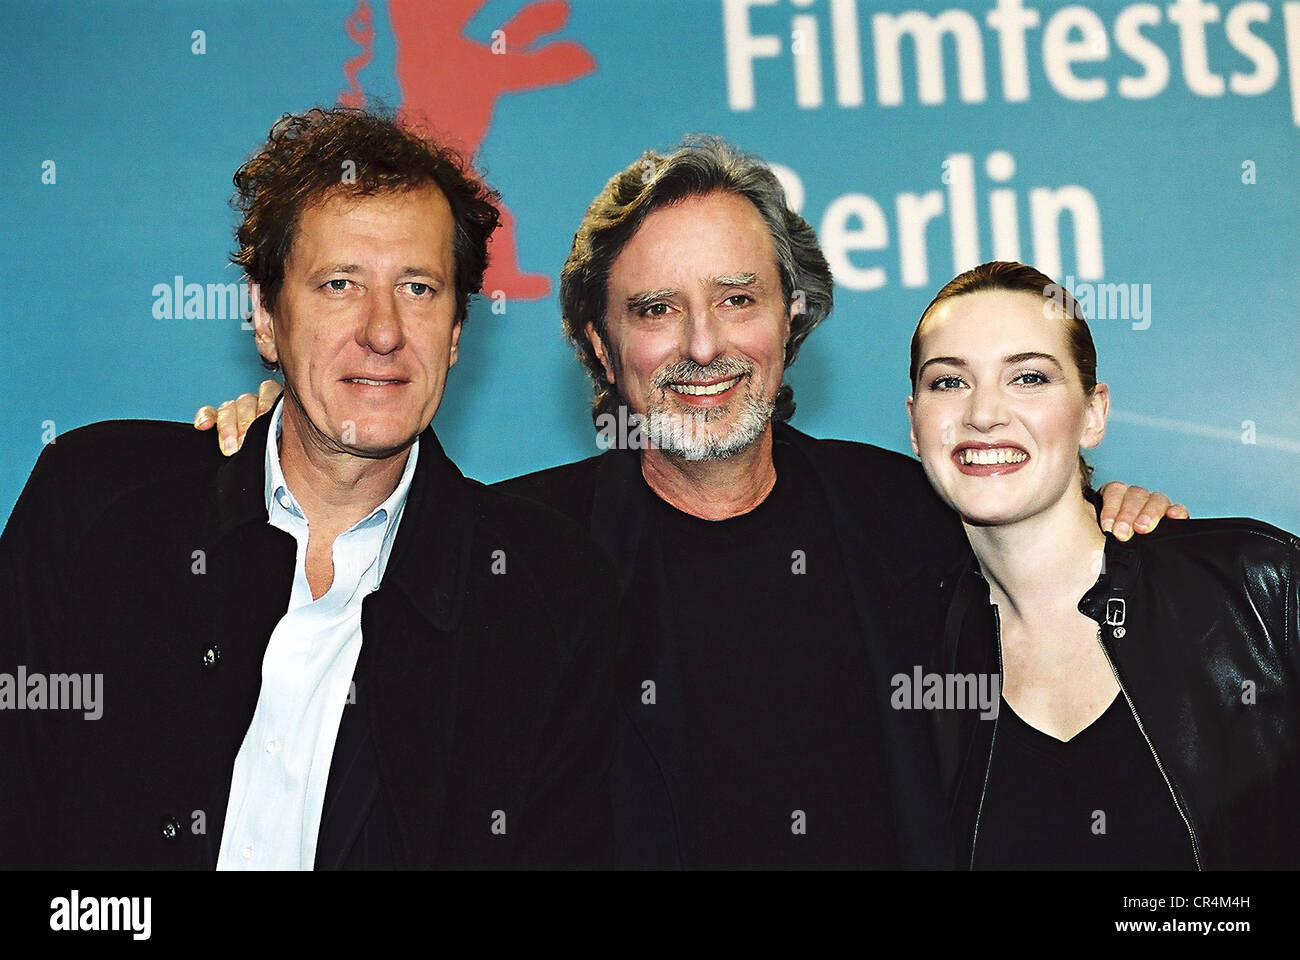 Winslet, Kate, * 5.10.1975, British actress, group picture. with Philip Kaufmann, US director, and Geoffrey Rush, - Stock Image